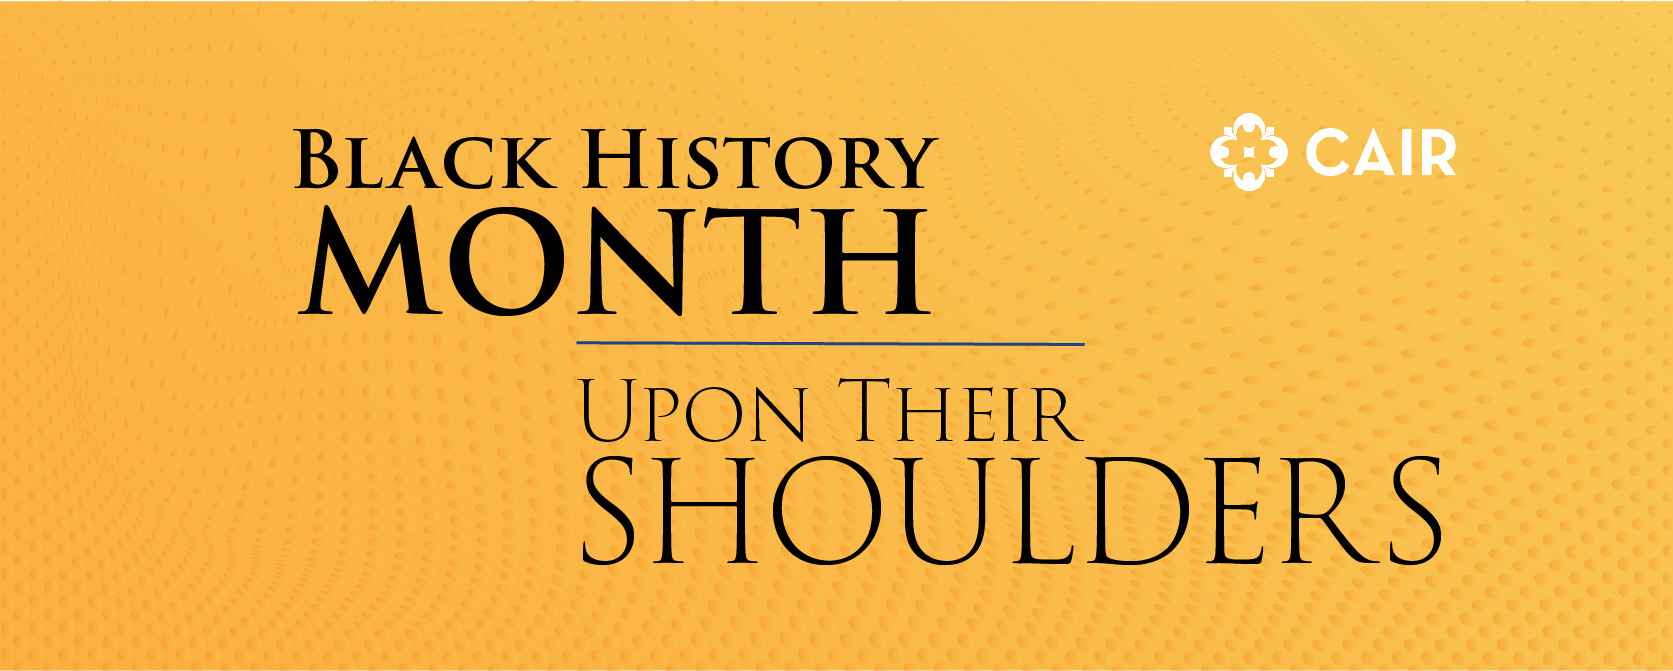 CAIR Black History Month